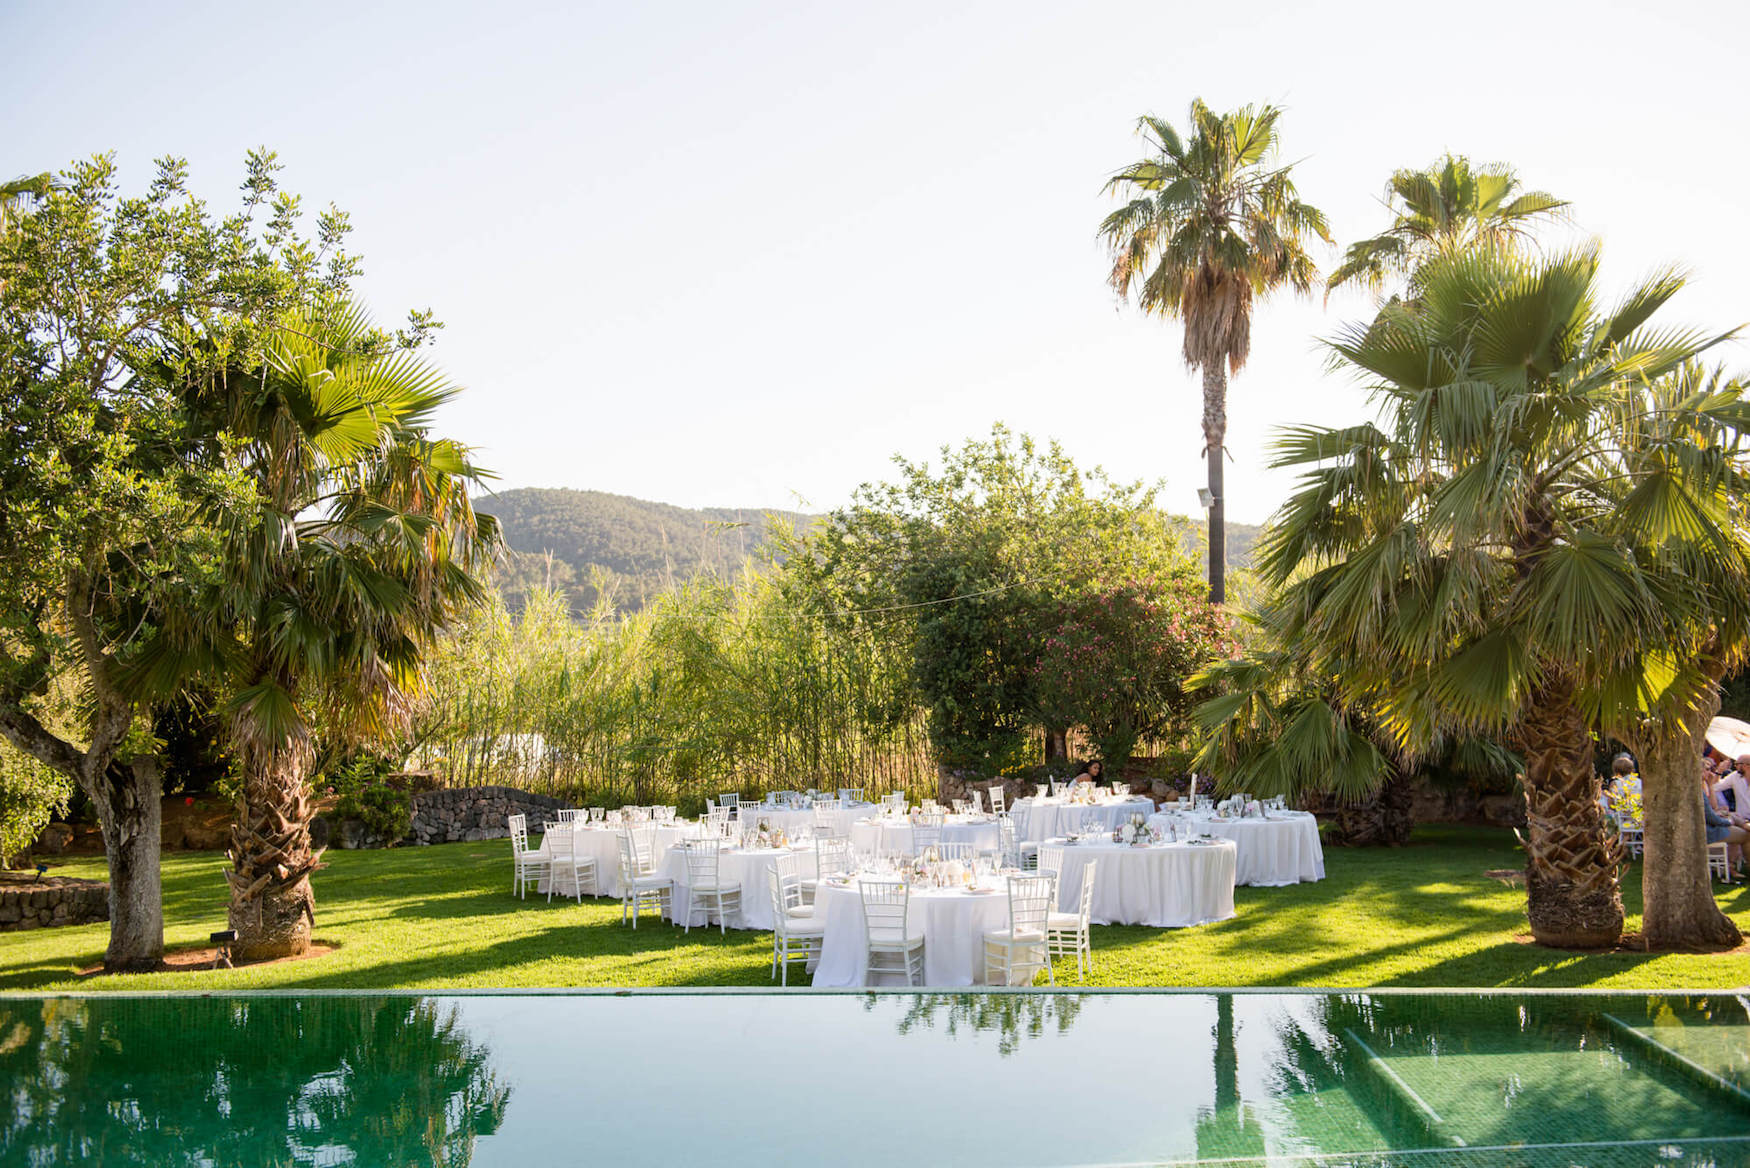 garden hotel wedding tables outdoor poolside dinner wedding breakfast